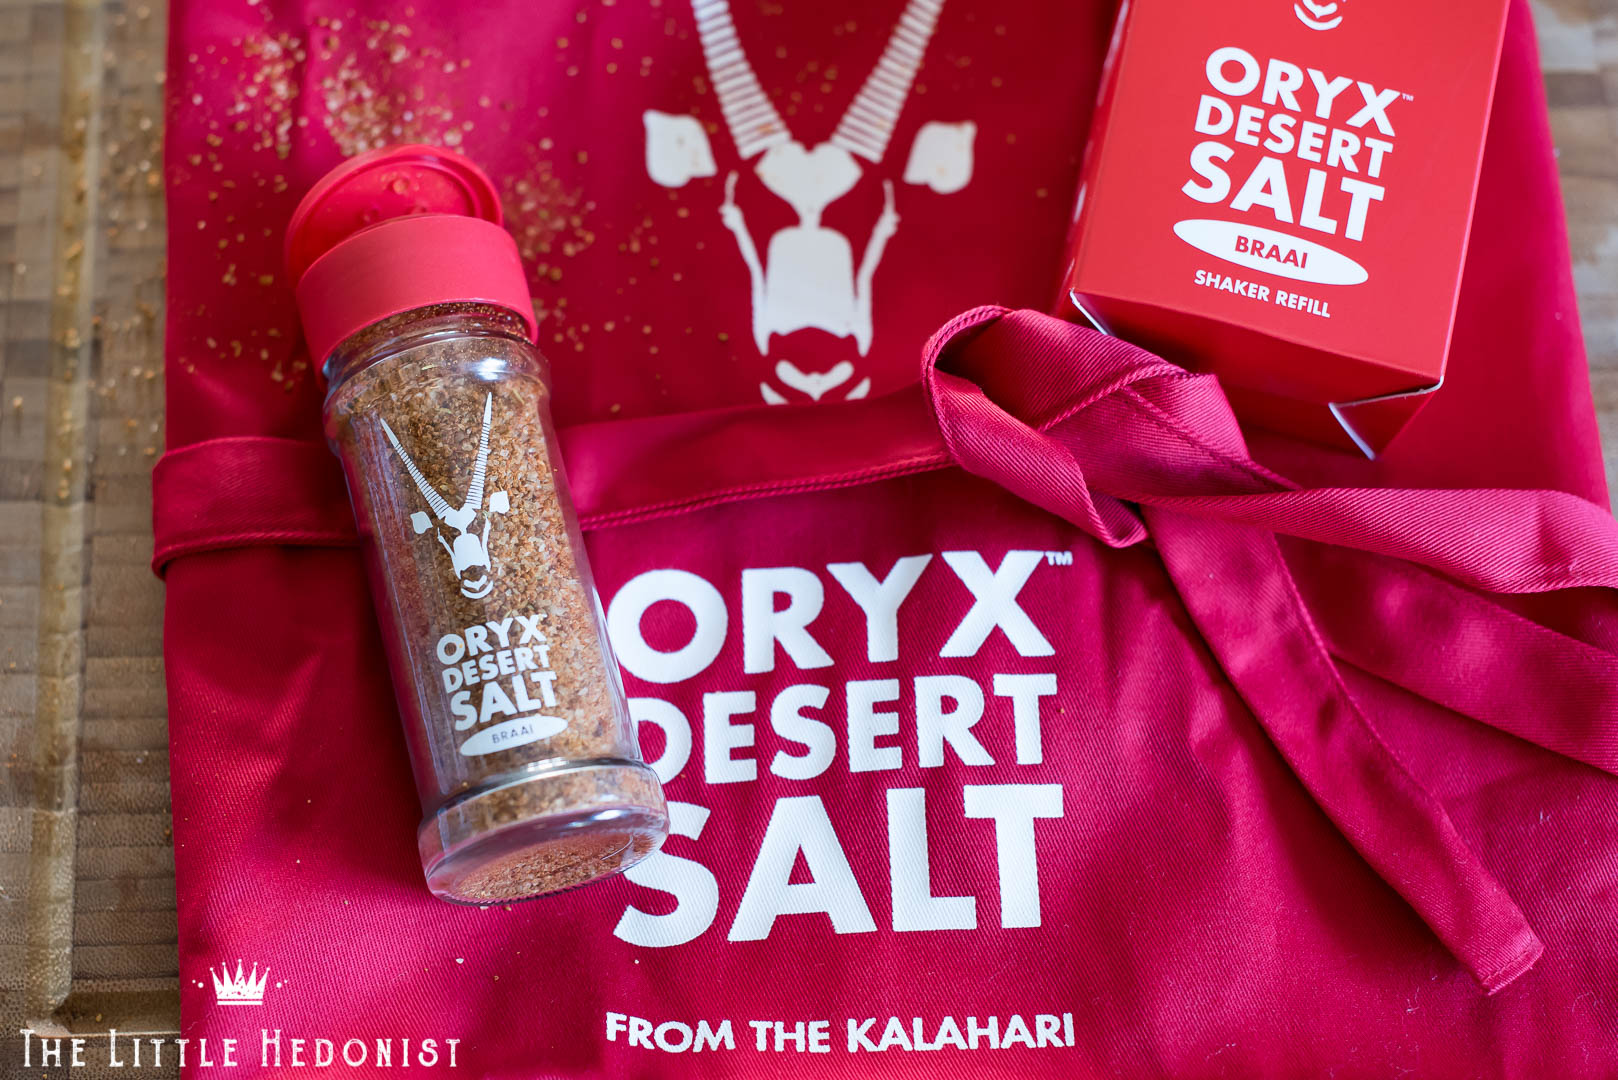 {PRODUCT REVIEW} Oryx Desert Salt: Braai